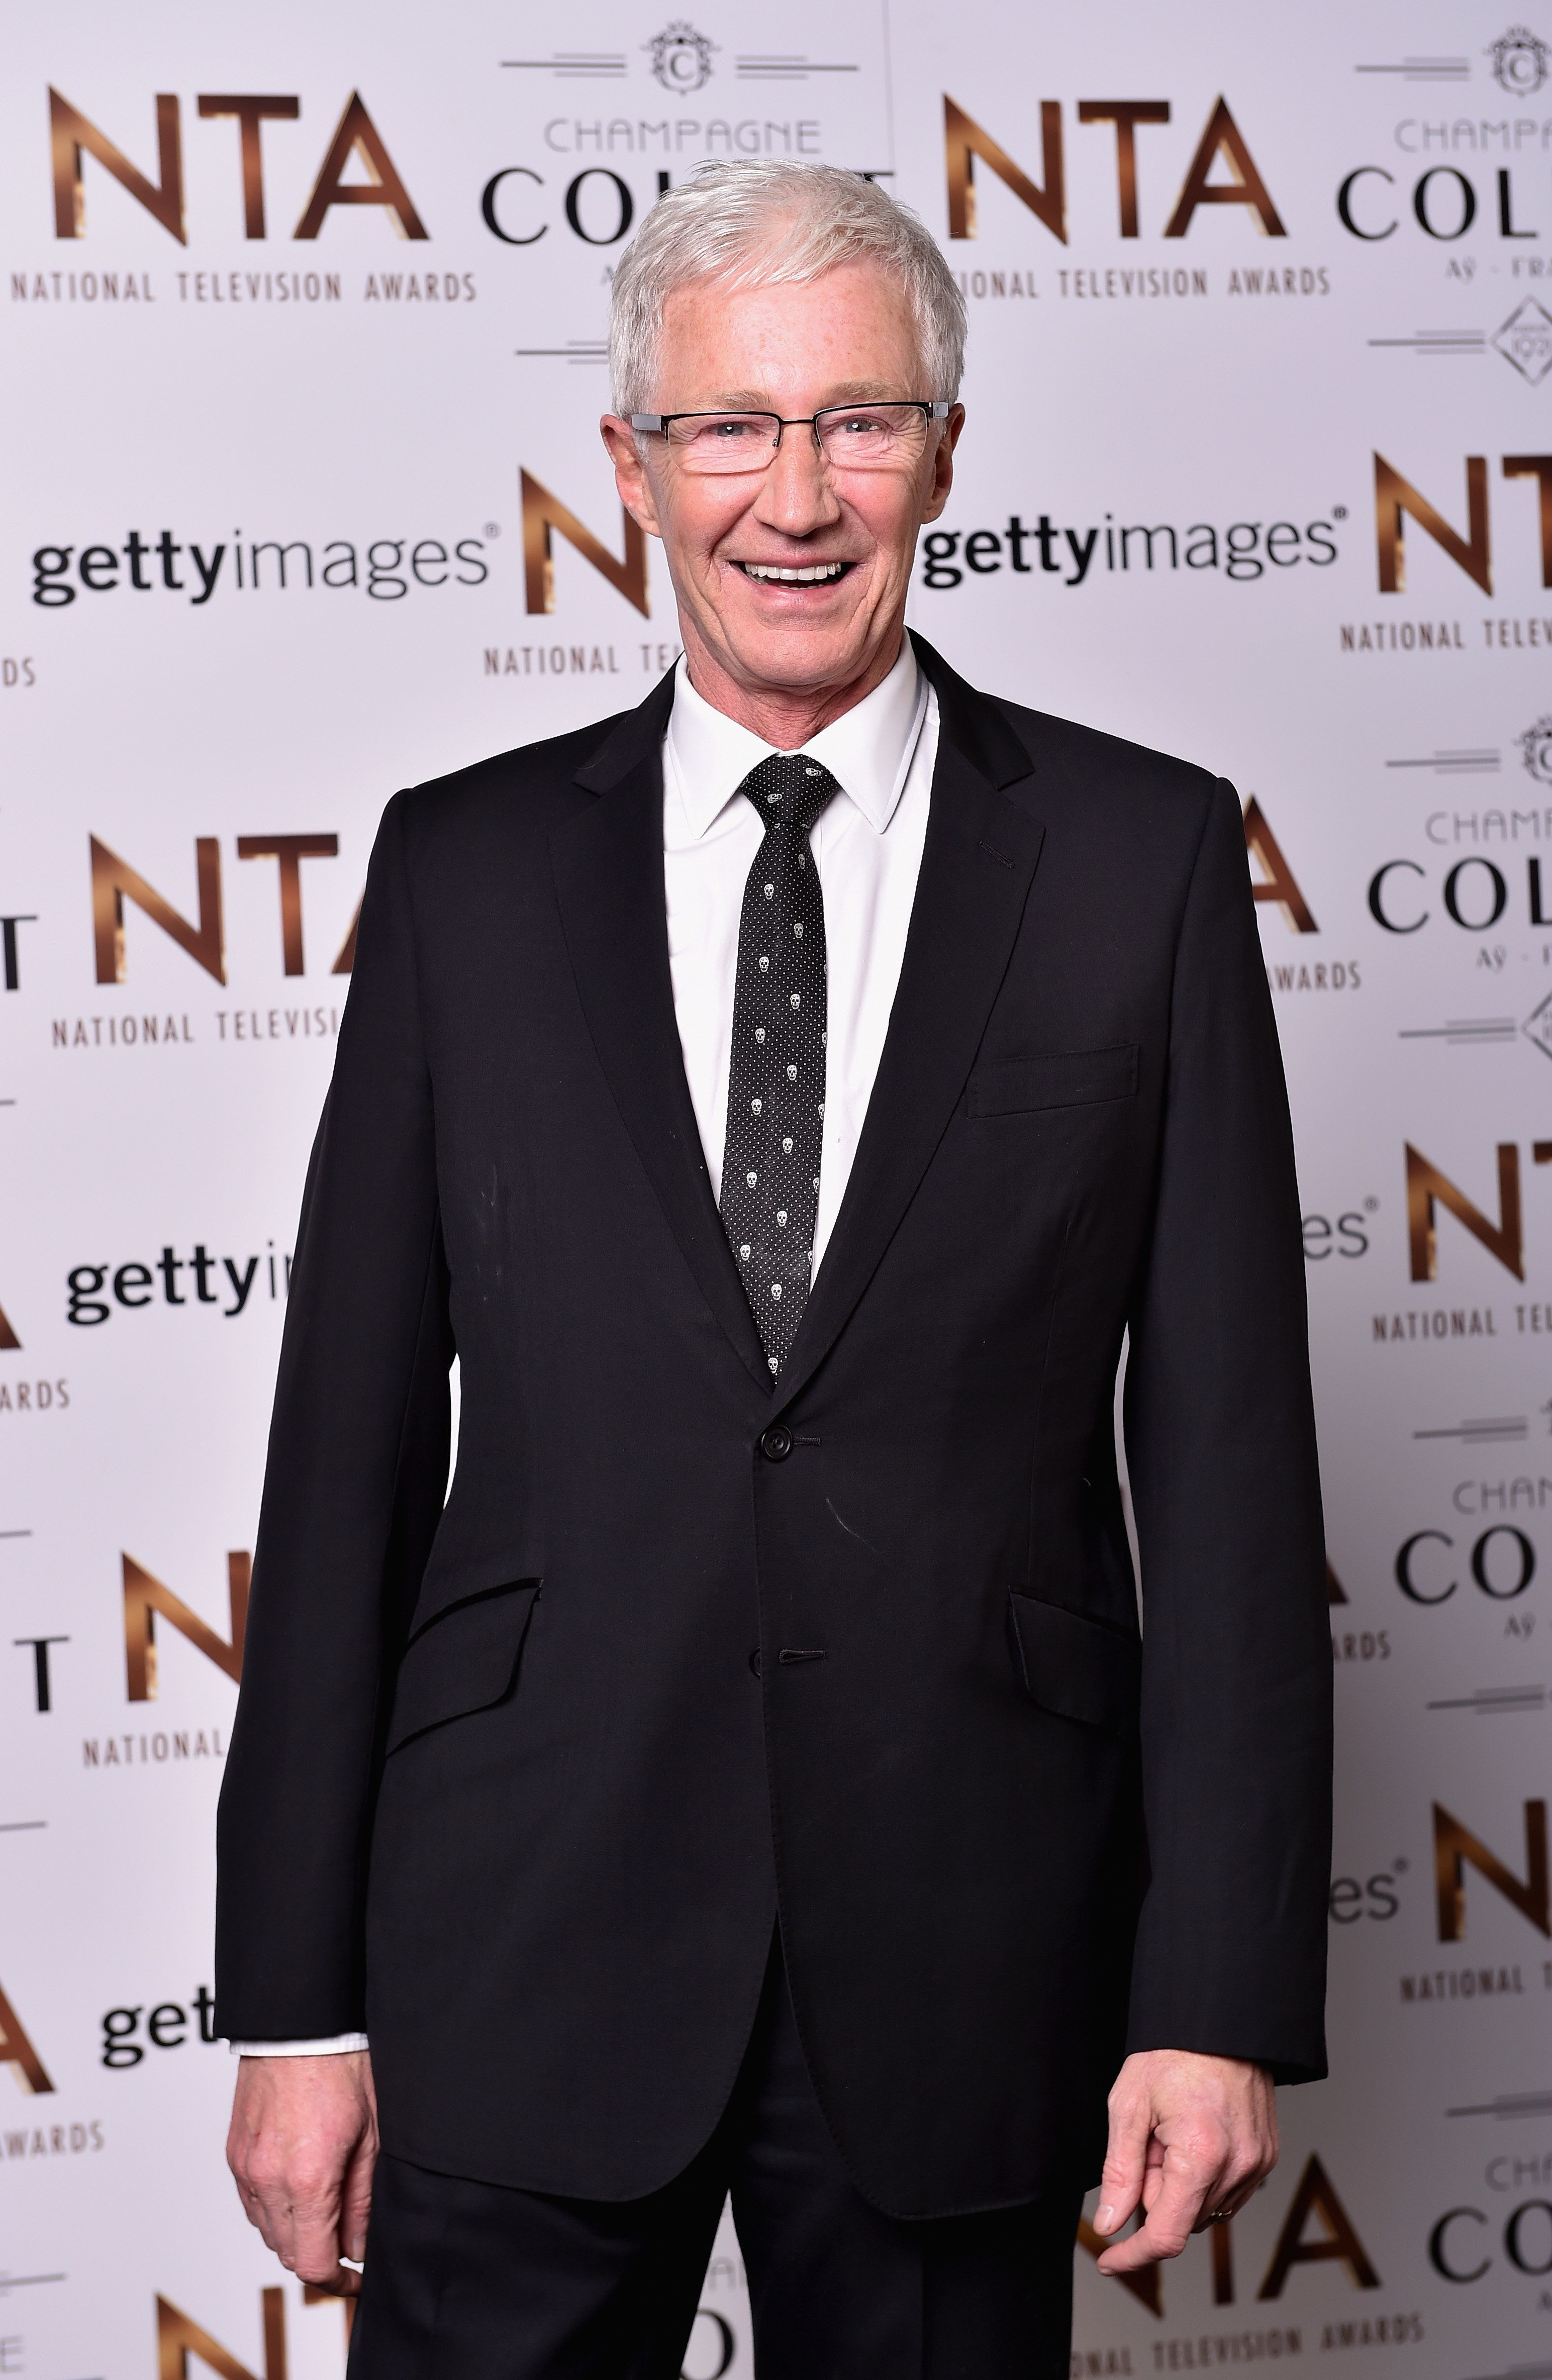 Paul O'Grady will front the new